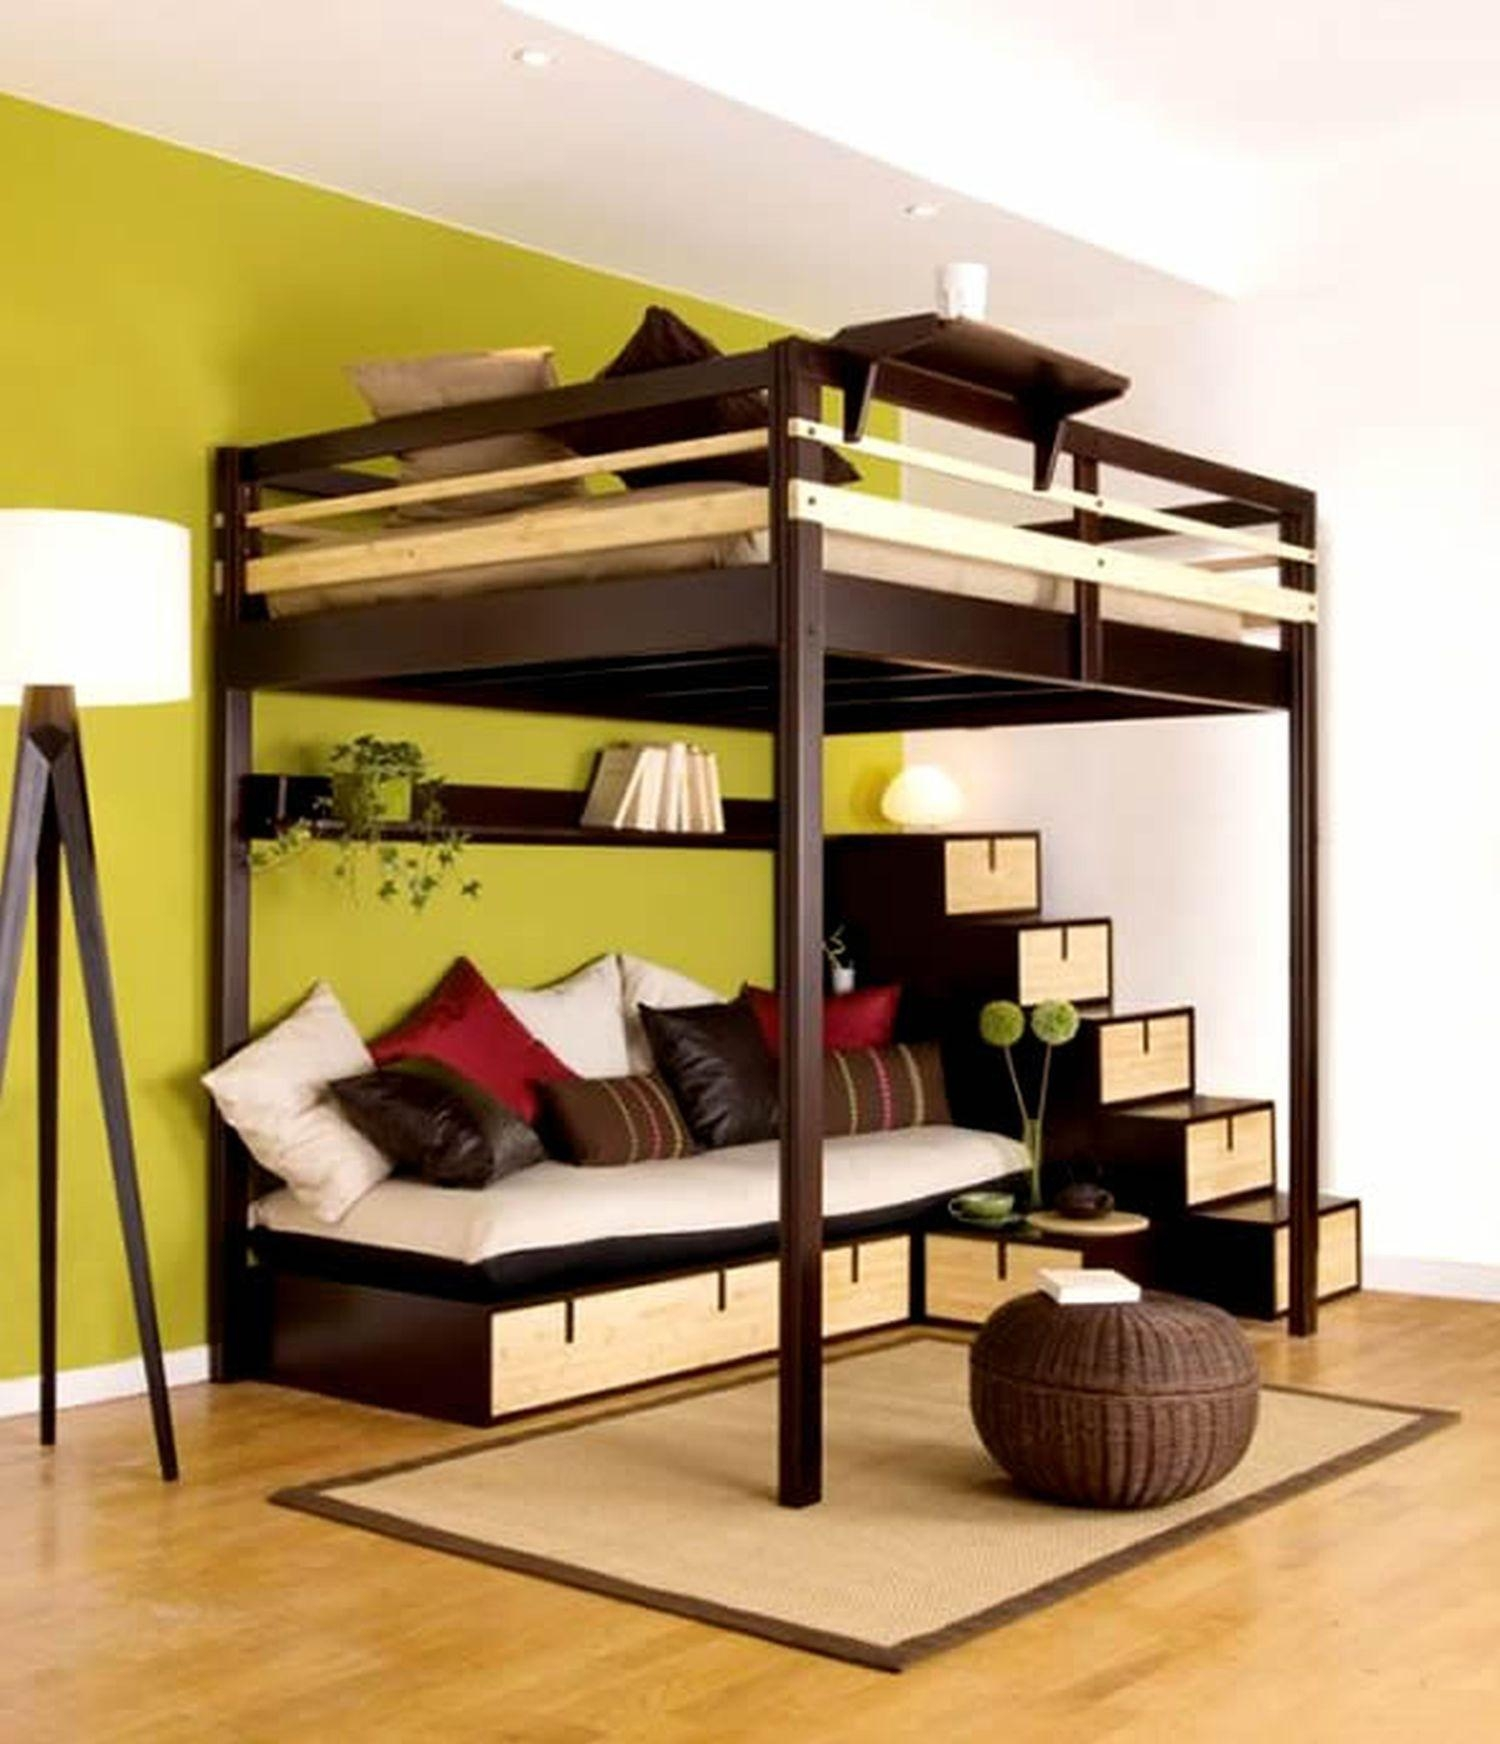 20 photos bunk bed with sofas underneath sofa ideas for Modern bunk bed with desk